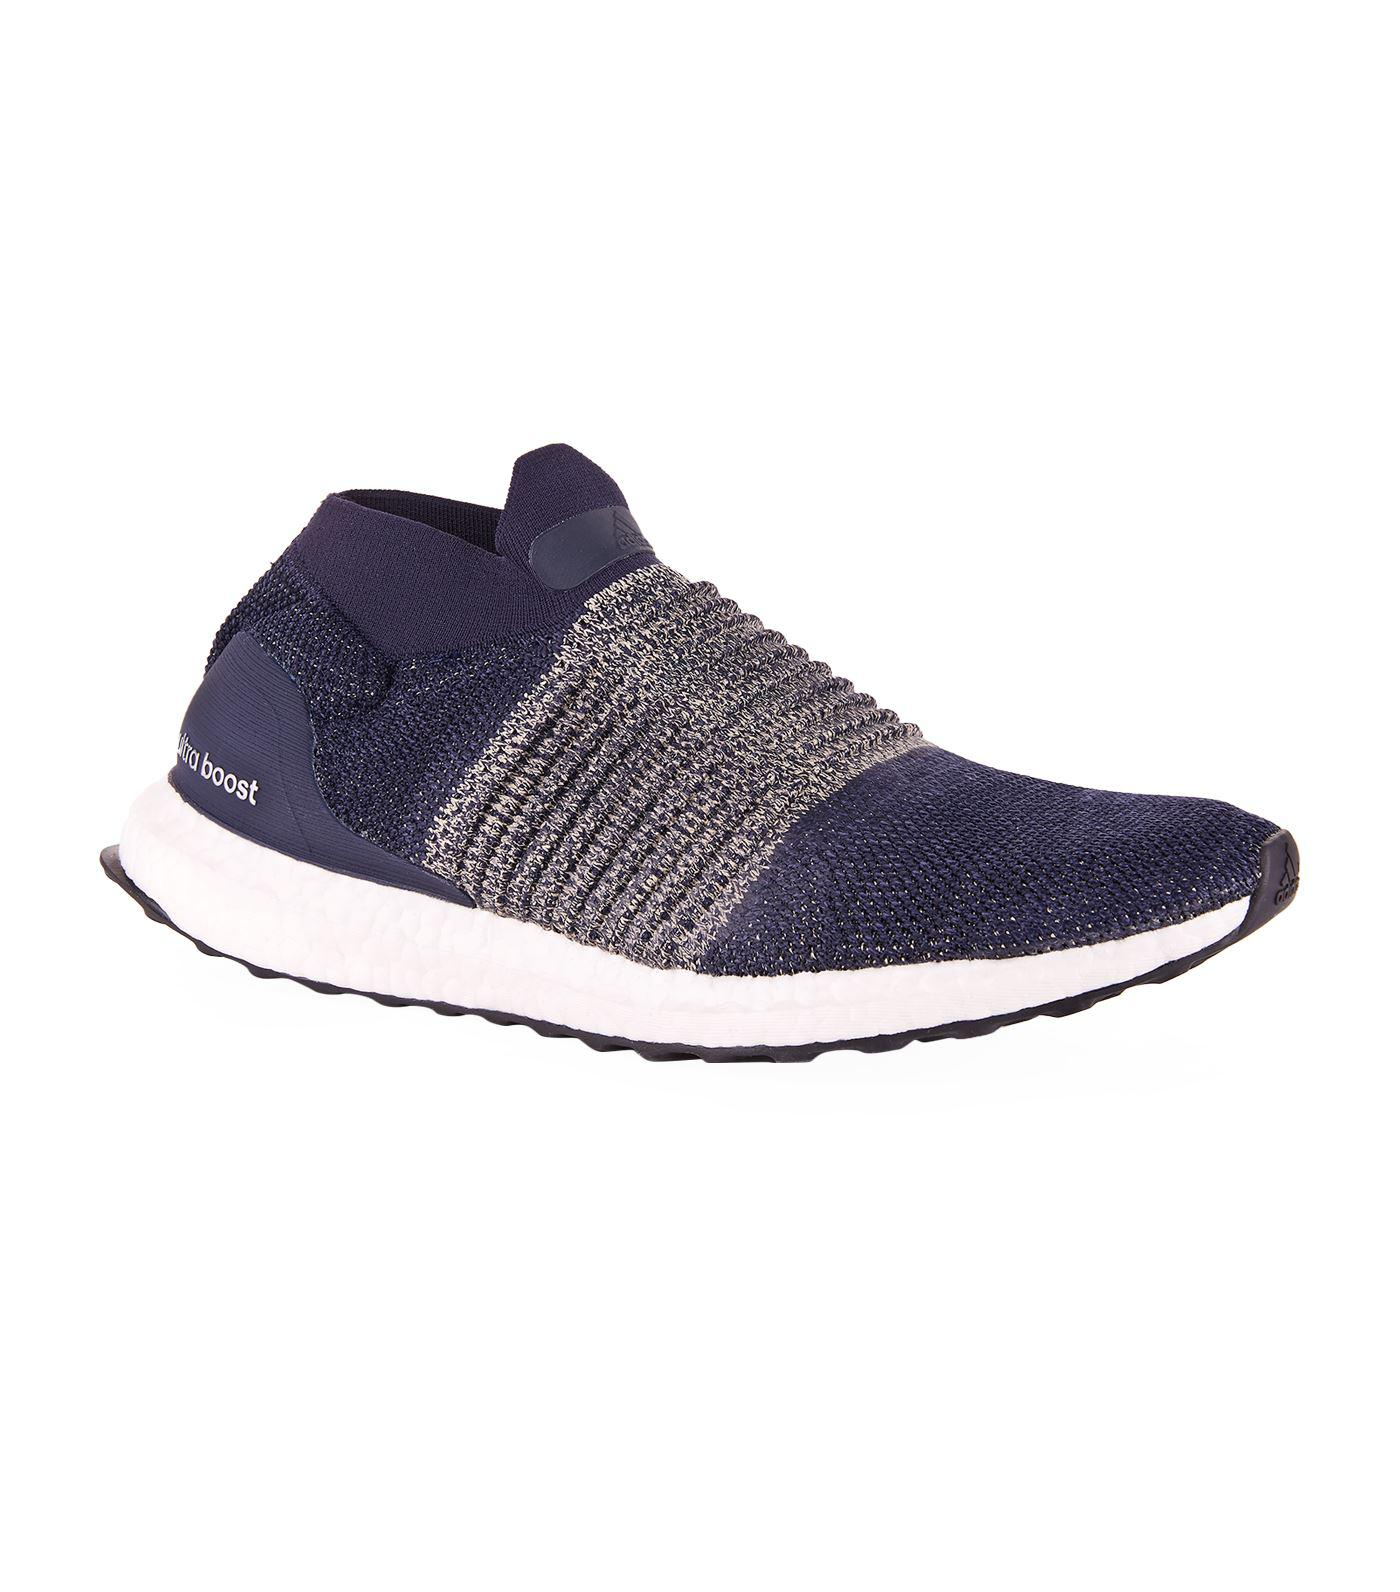 51249f971c2 Lyst - Adidas Ultraboost Laceless Trainers in Blue for Men - Save 4%